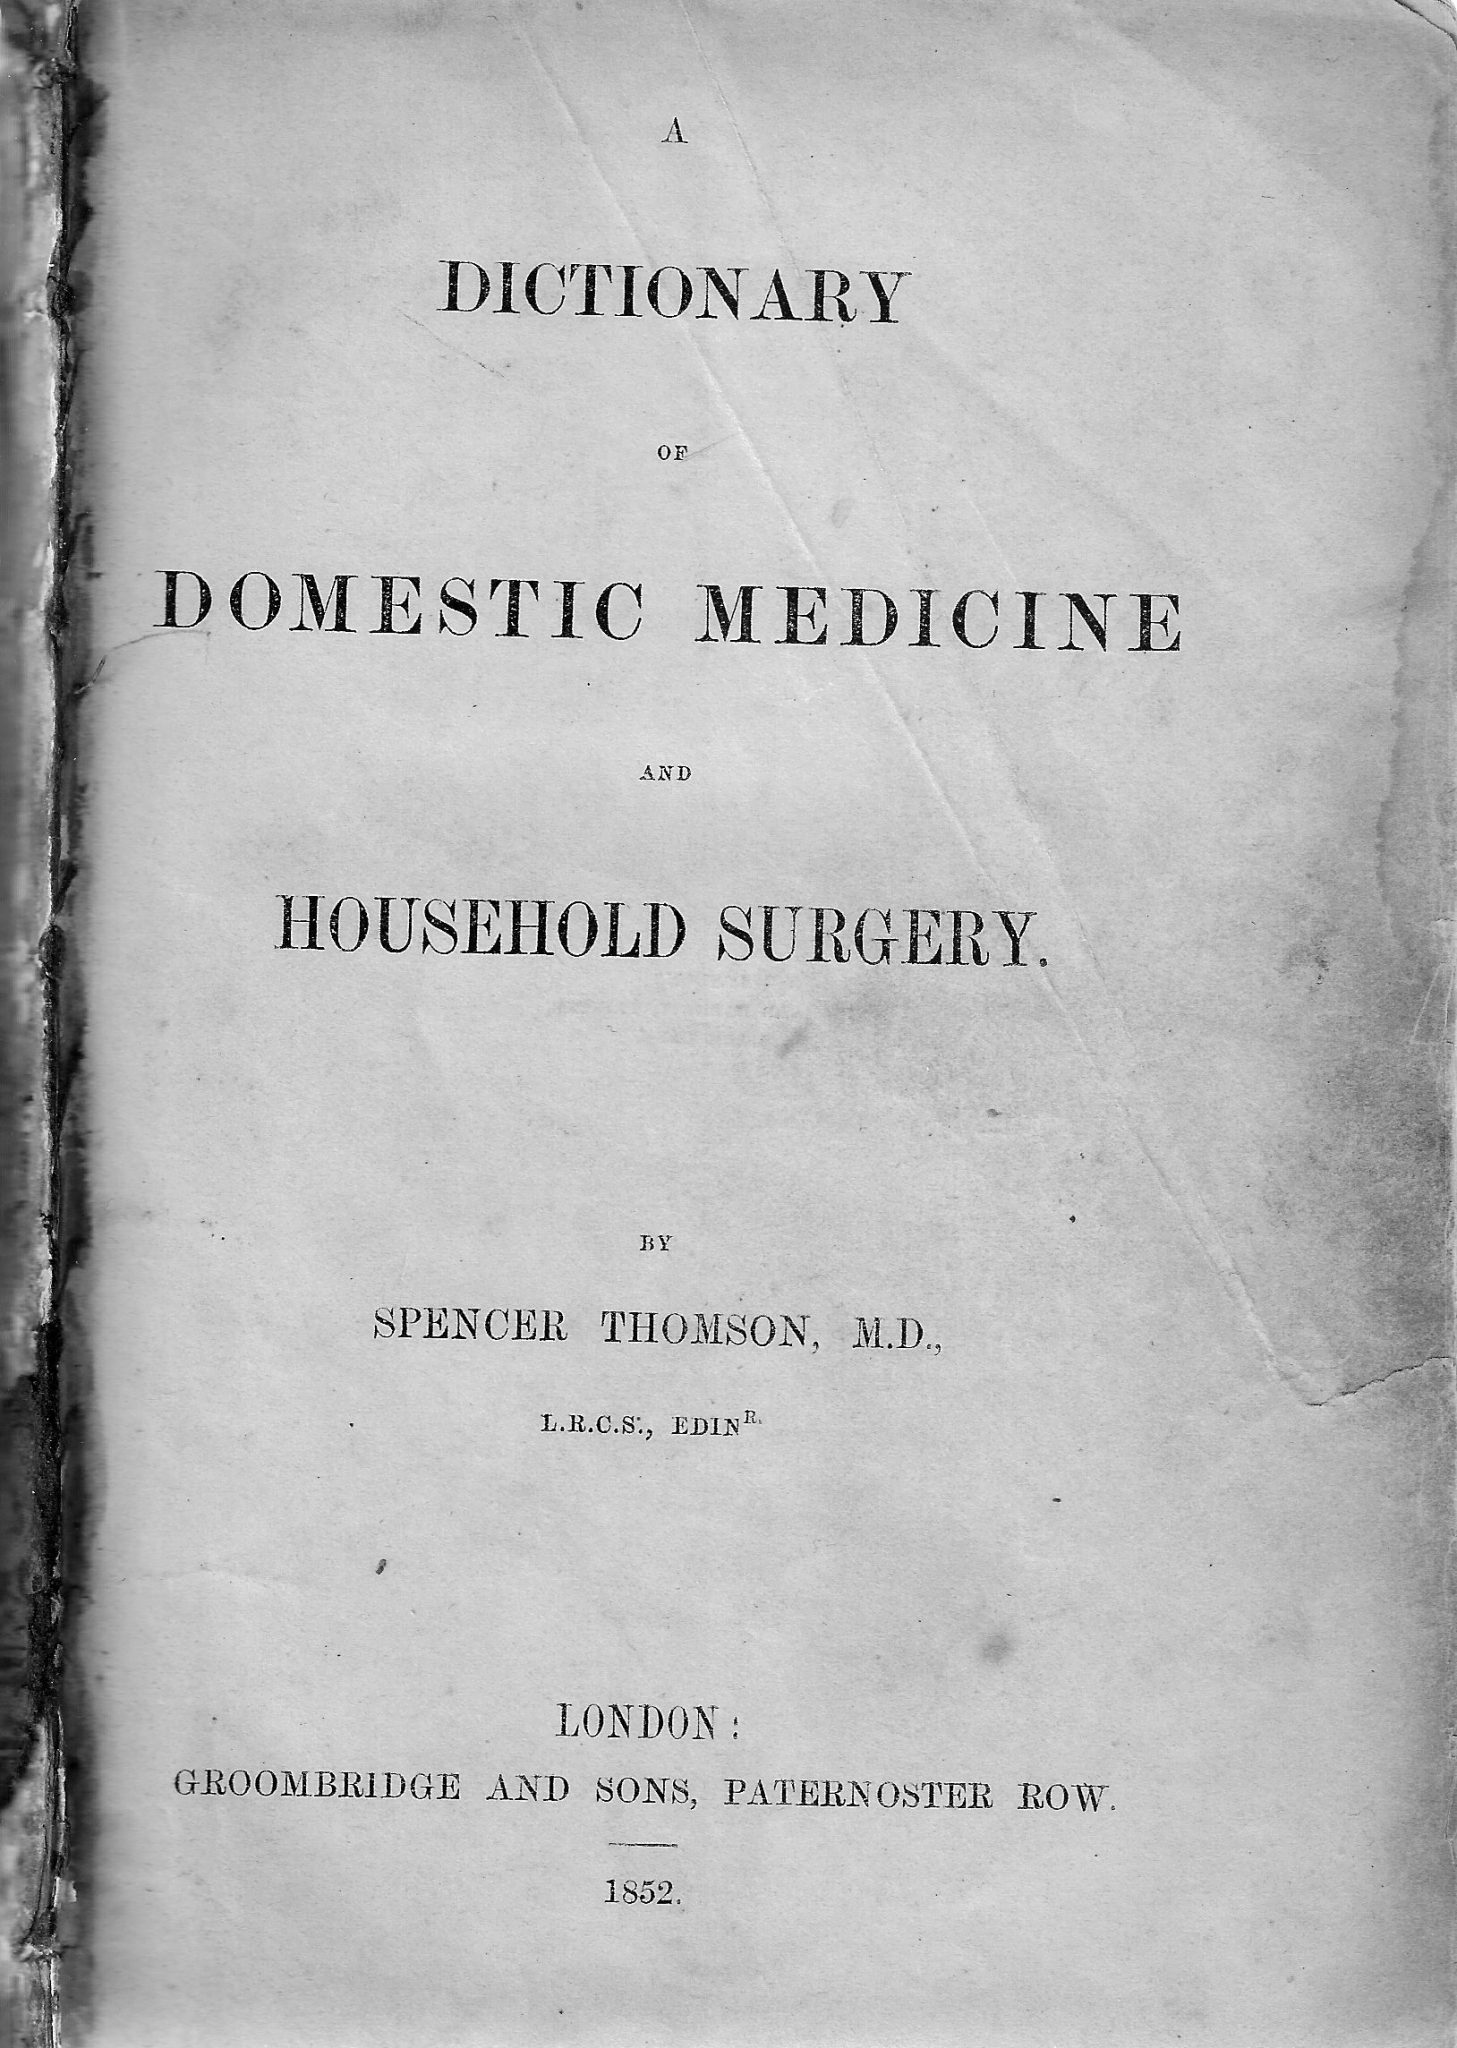 Frontispiece of 1852 book Domestic Medicine and Household Surgery